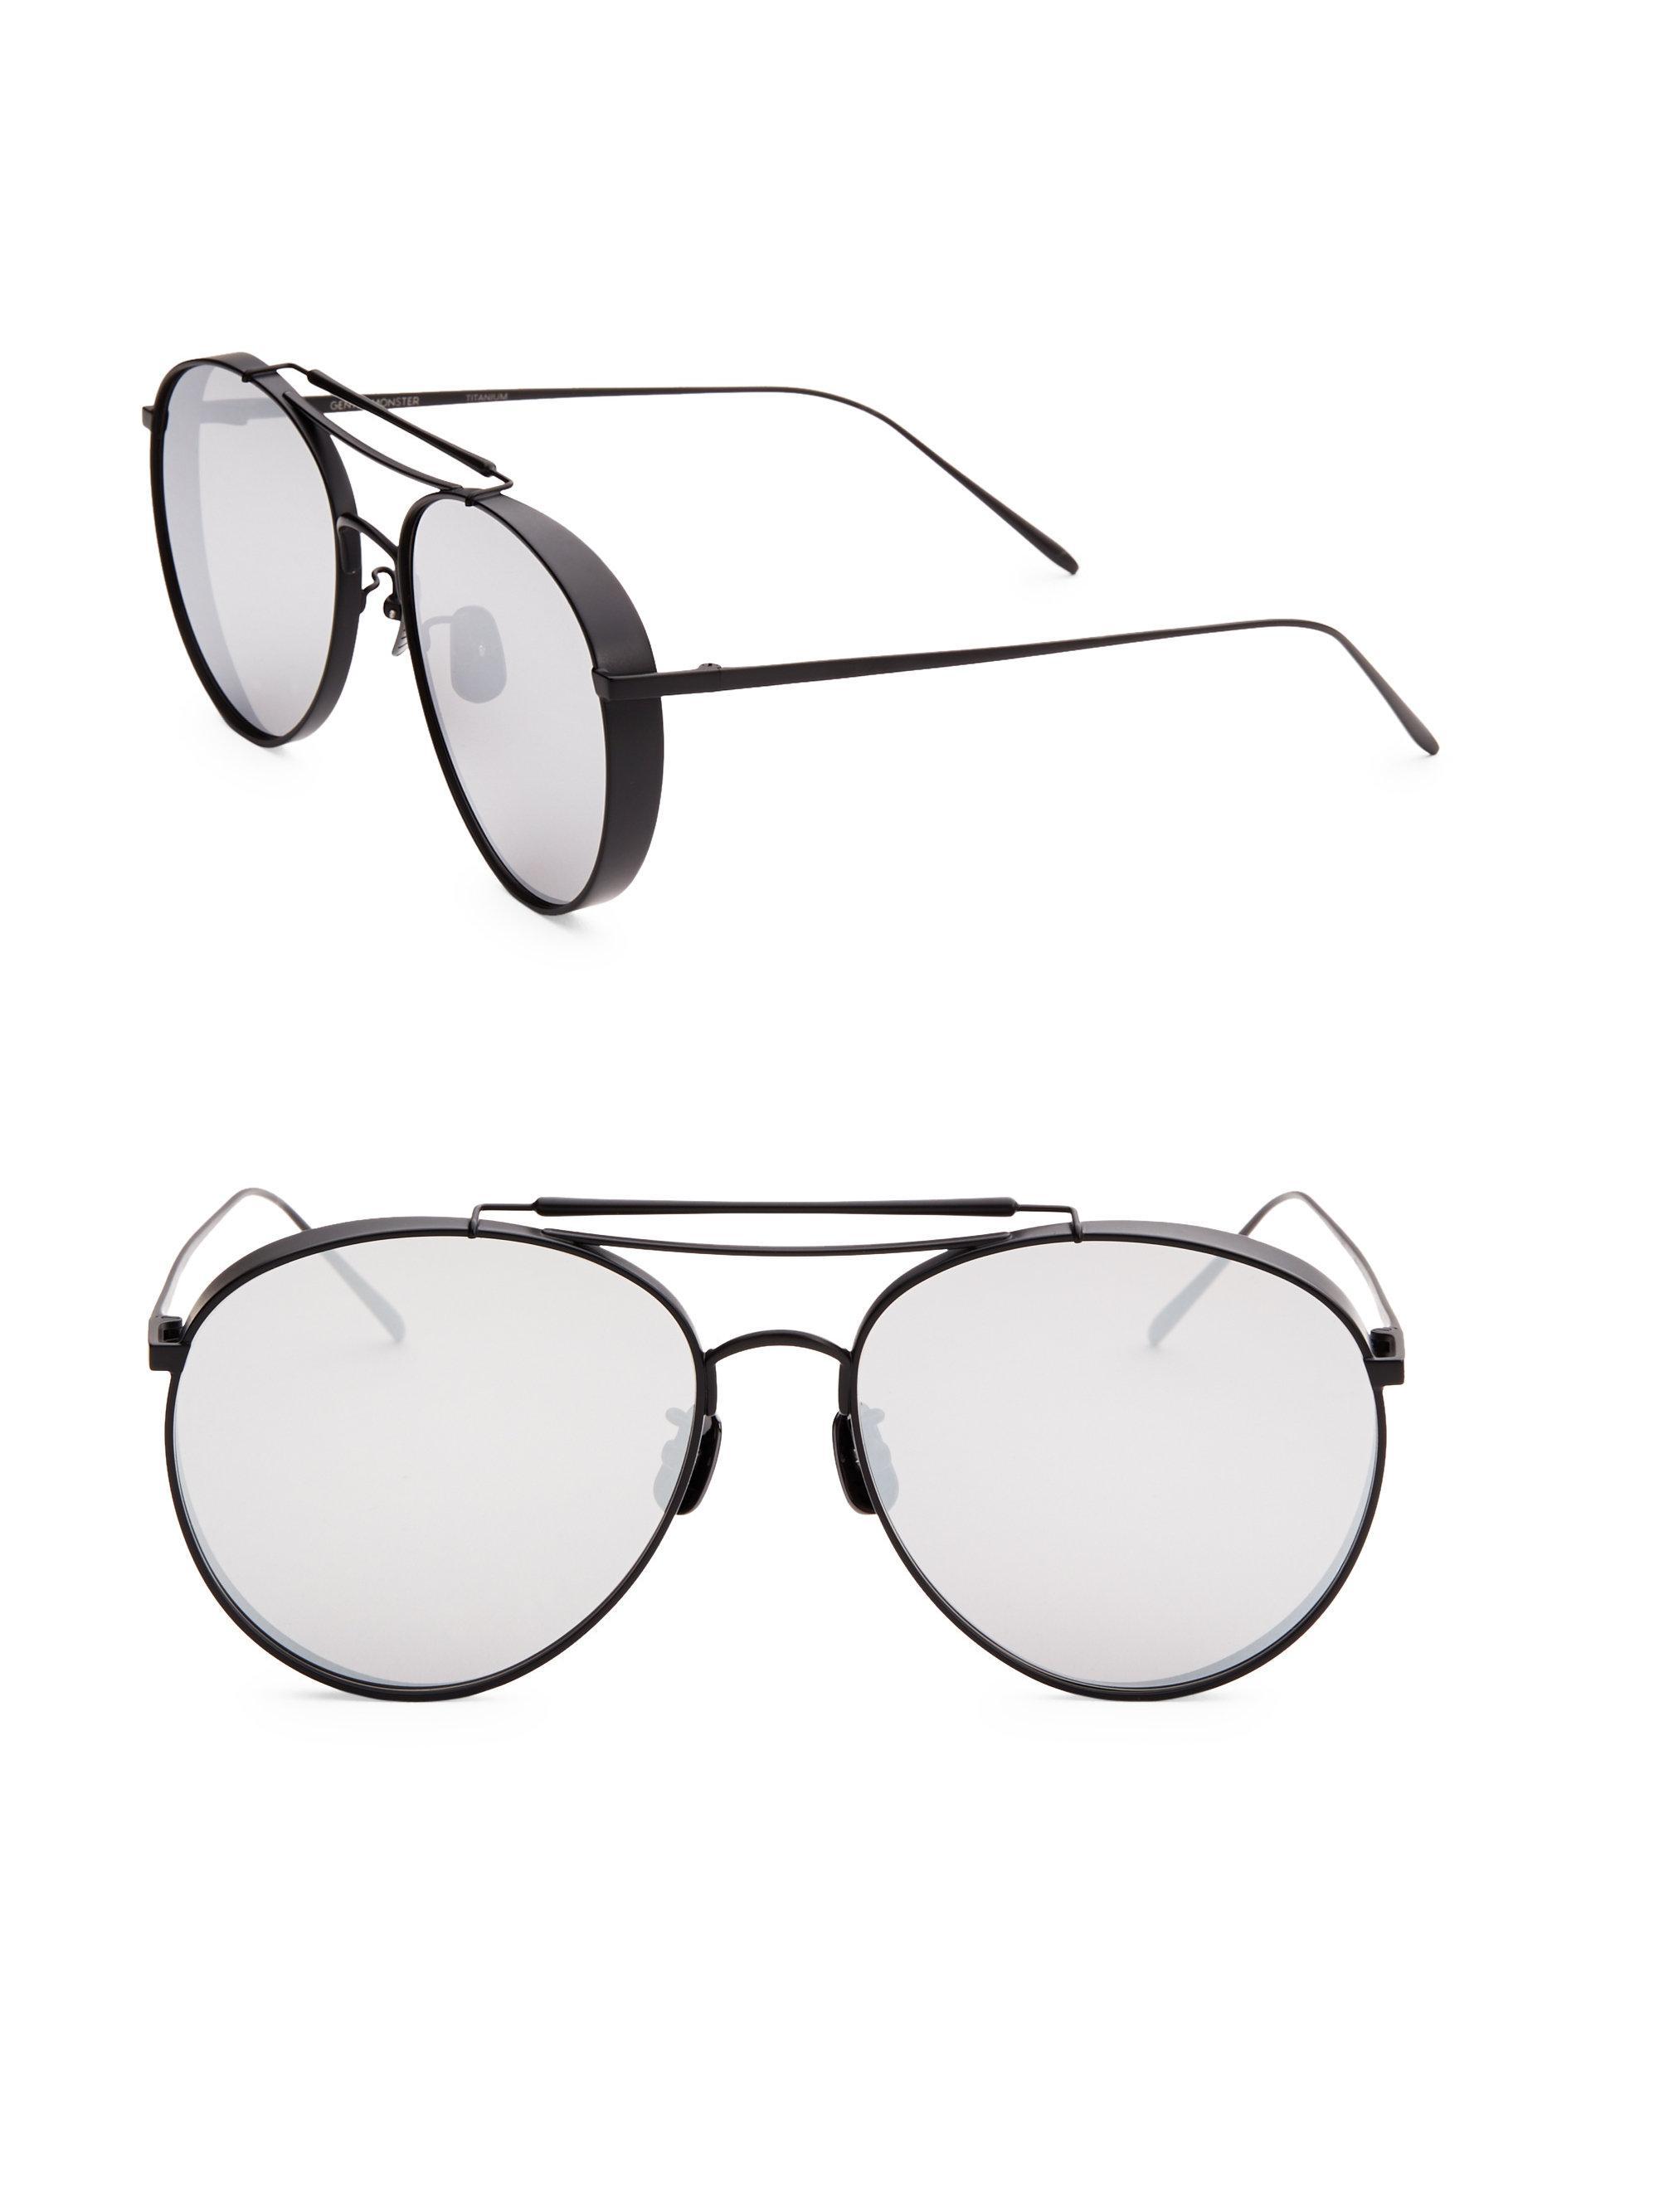 d01279ef6bb3 Lyst - Gentle Monster 60mm Big Bully Aviator Sunglasses in Black